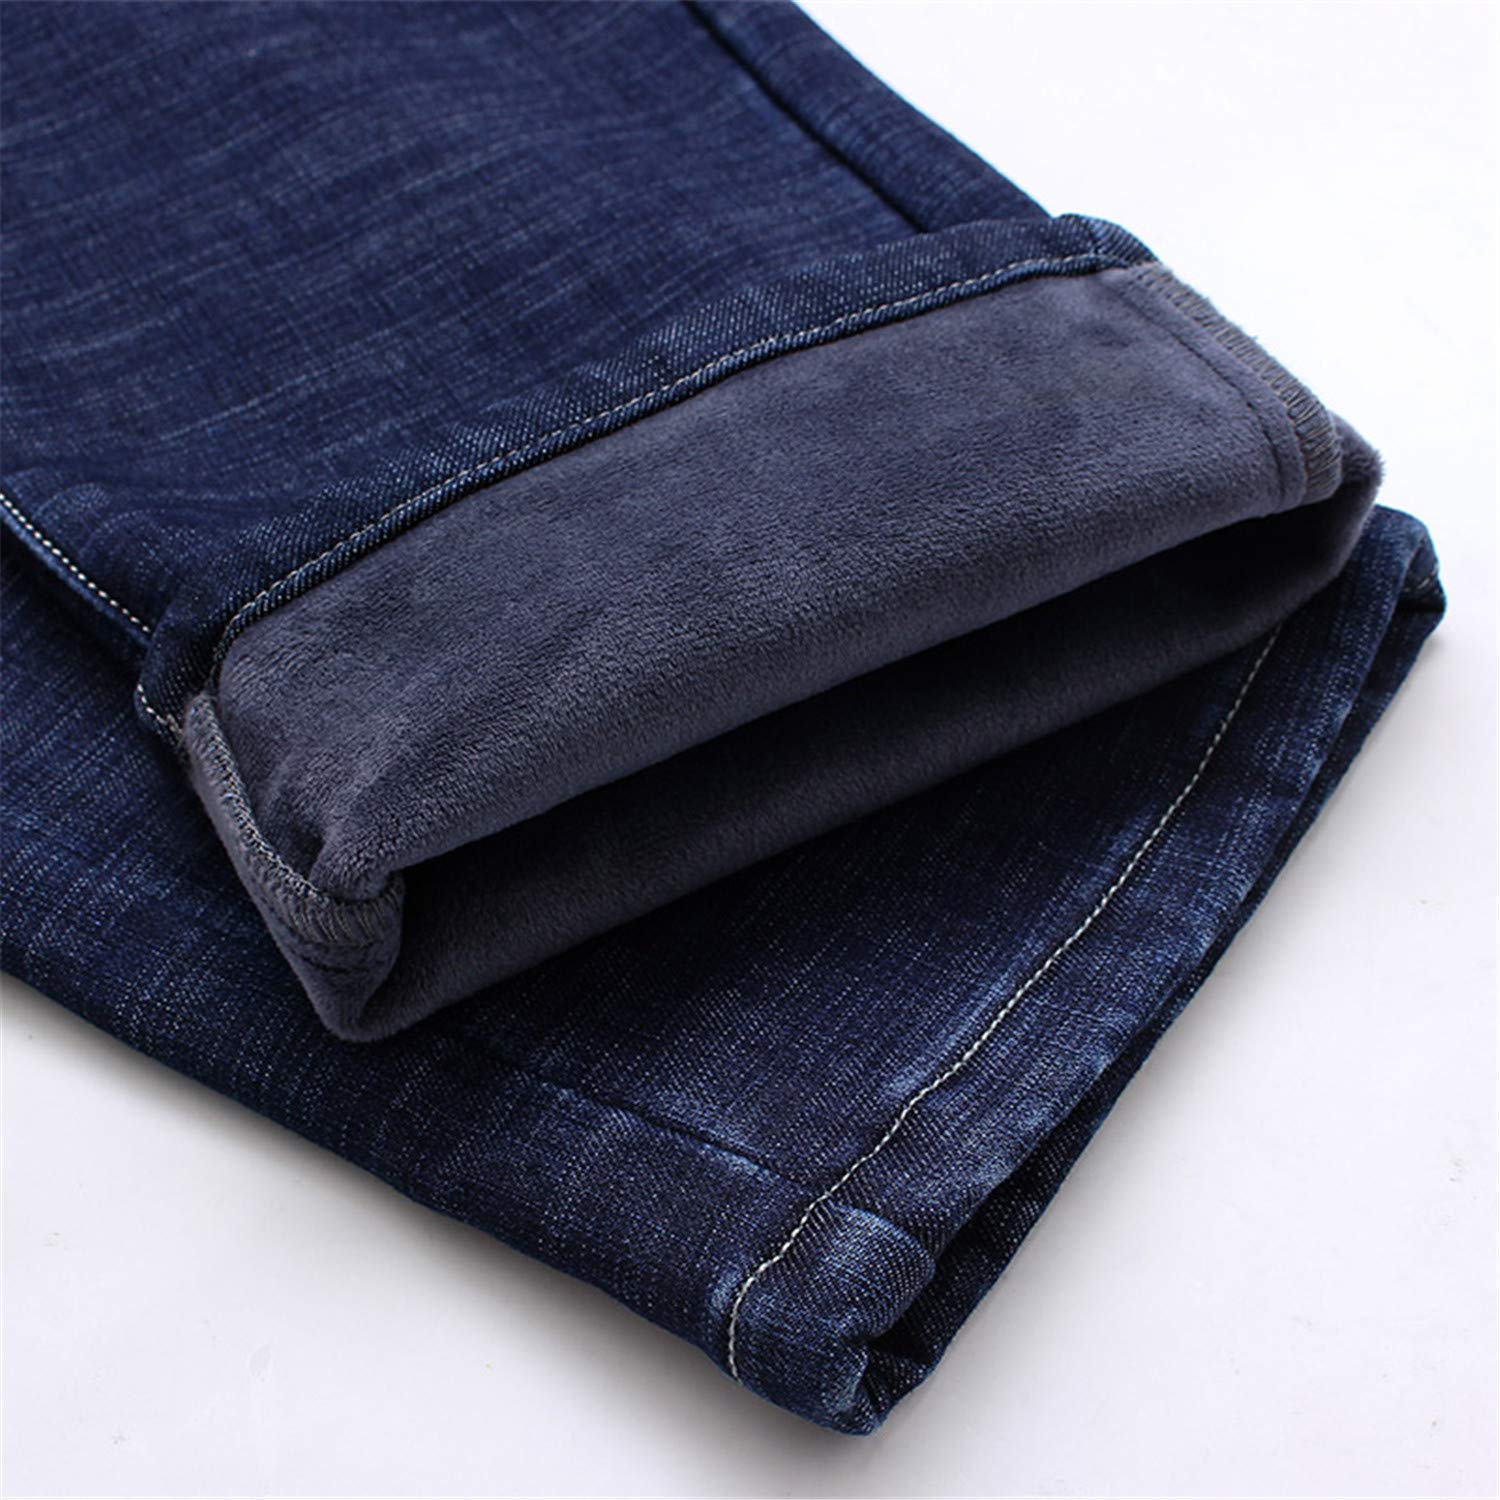 Mistoms Thick Stretch Denim Jeans Straight Fit Trousers Male Cotton Pants Men Large